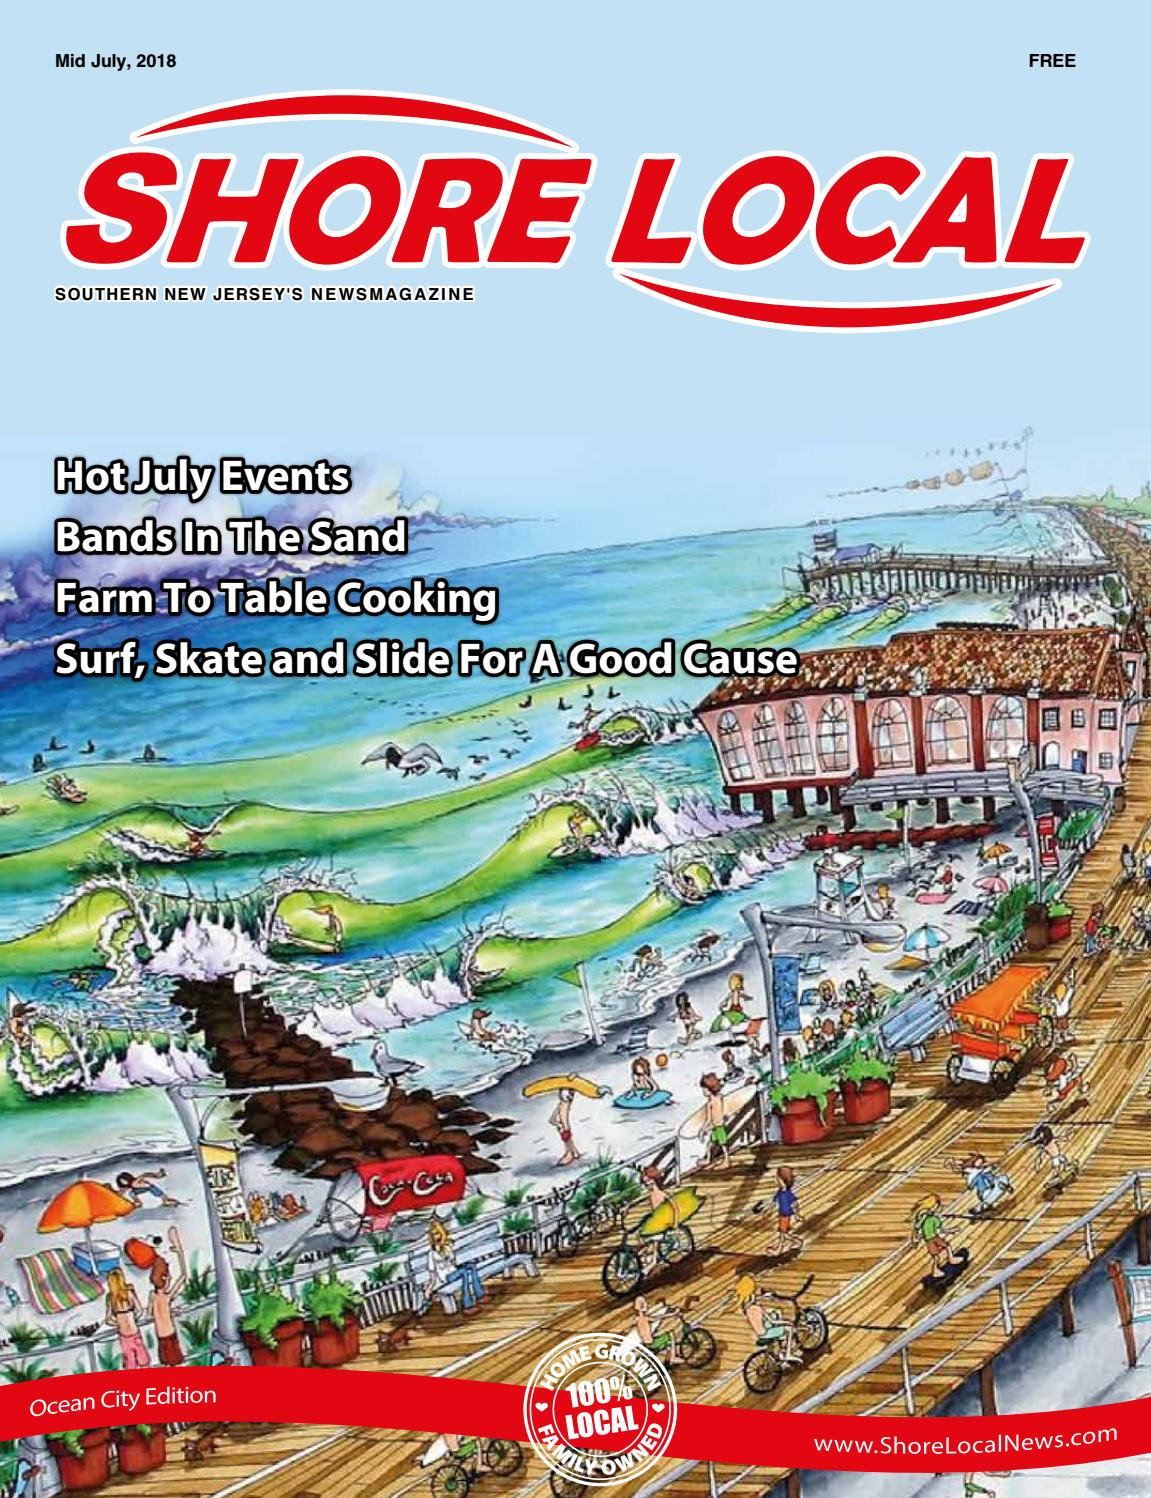 Shore Local Ocean City July 12 18 2018 By Mike Kurov Issuu